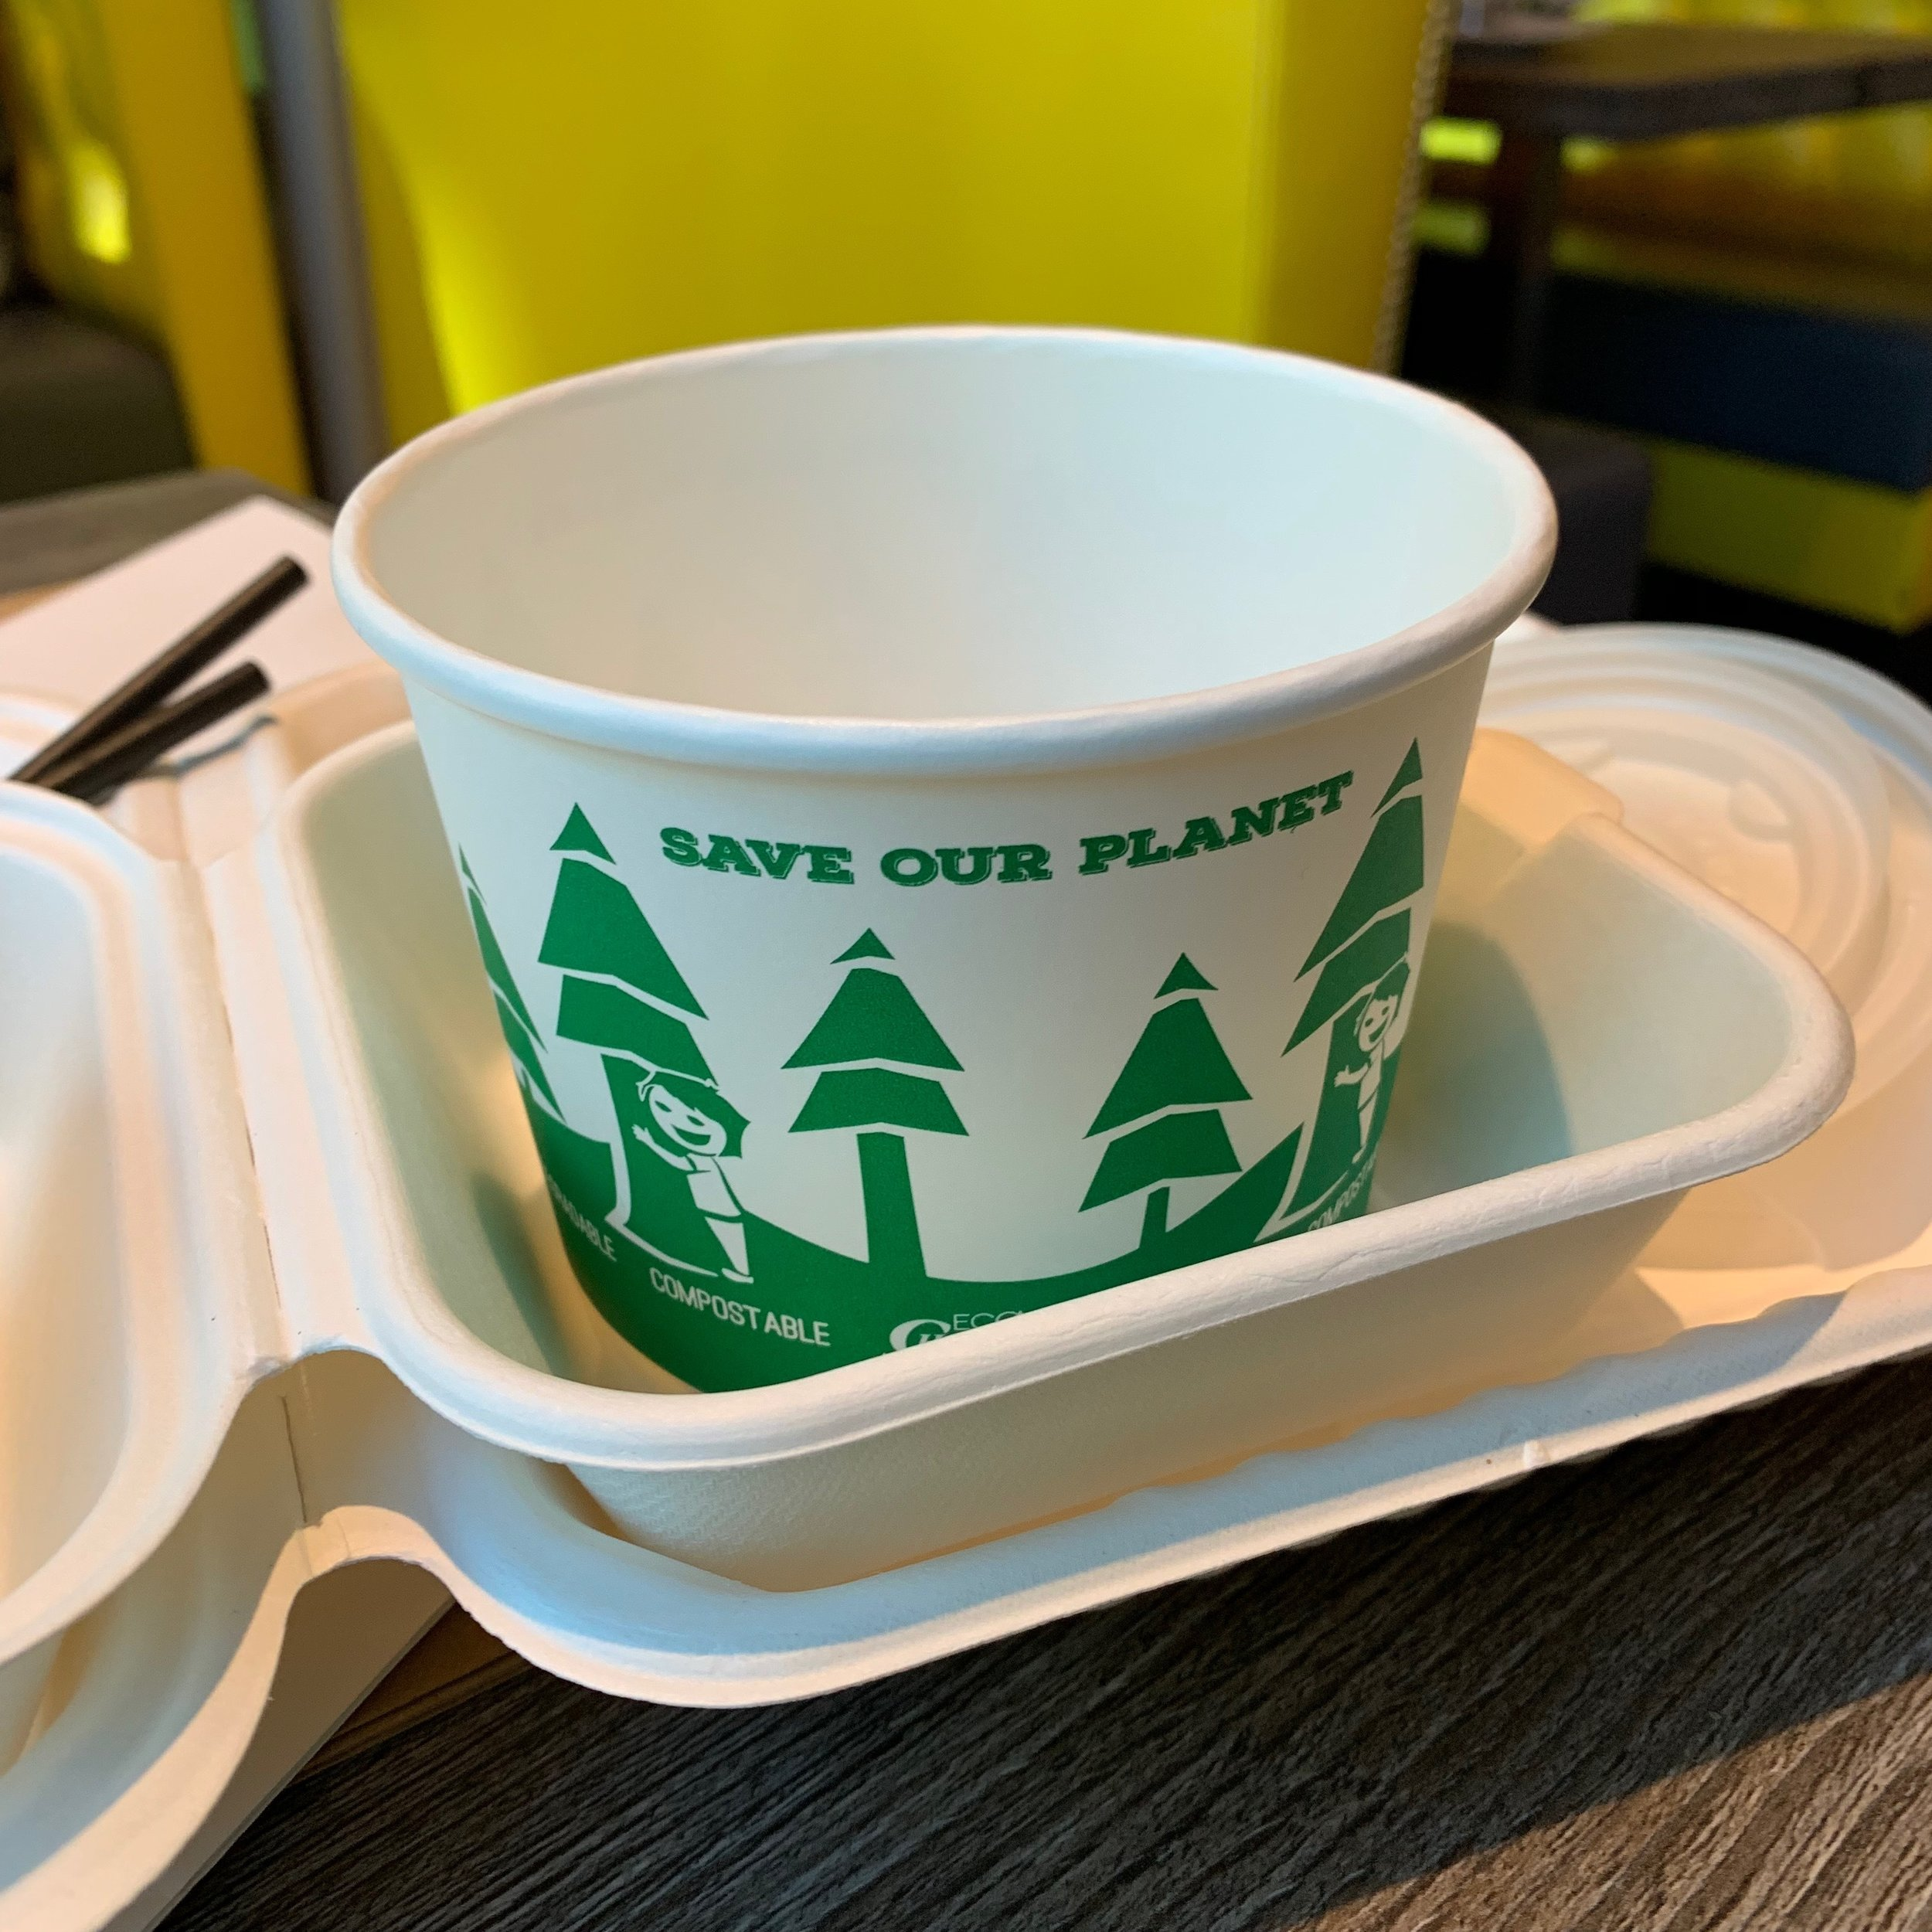 Takeout containers at Lime and Lemon are biodegradable (the restaurant aims to be plastic-free!).